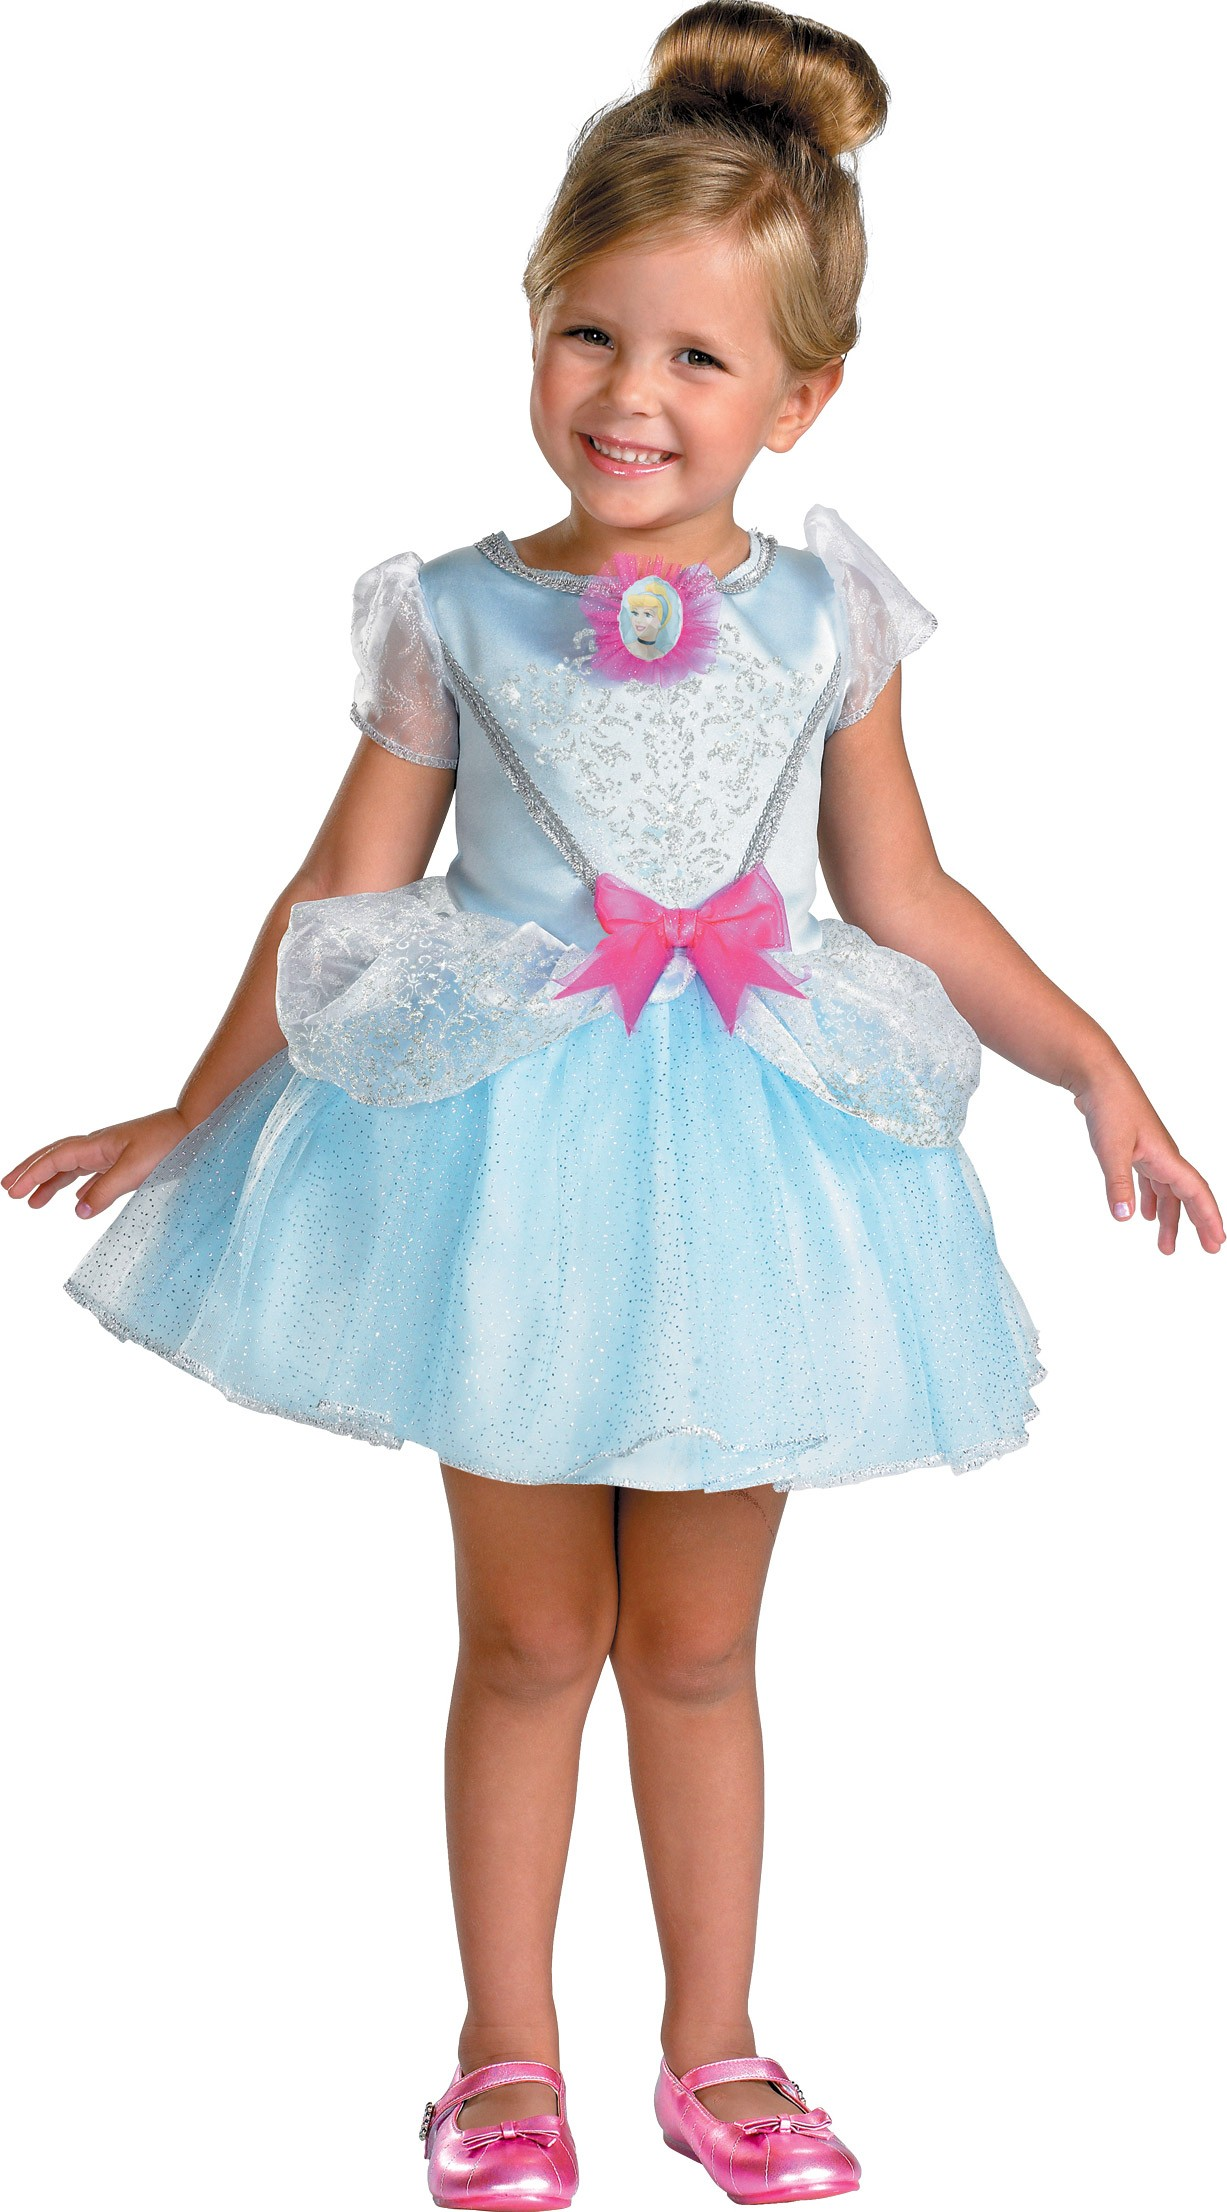 Cinderella costumes are here. Adult Cinderella costumes and girls Cinderella costumes. We even have Fairy Godmother costumes, Prince costumes and more. You'll find great deals on this years best Cinderella costumes at Halloween Express.